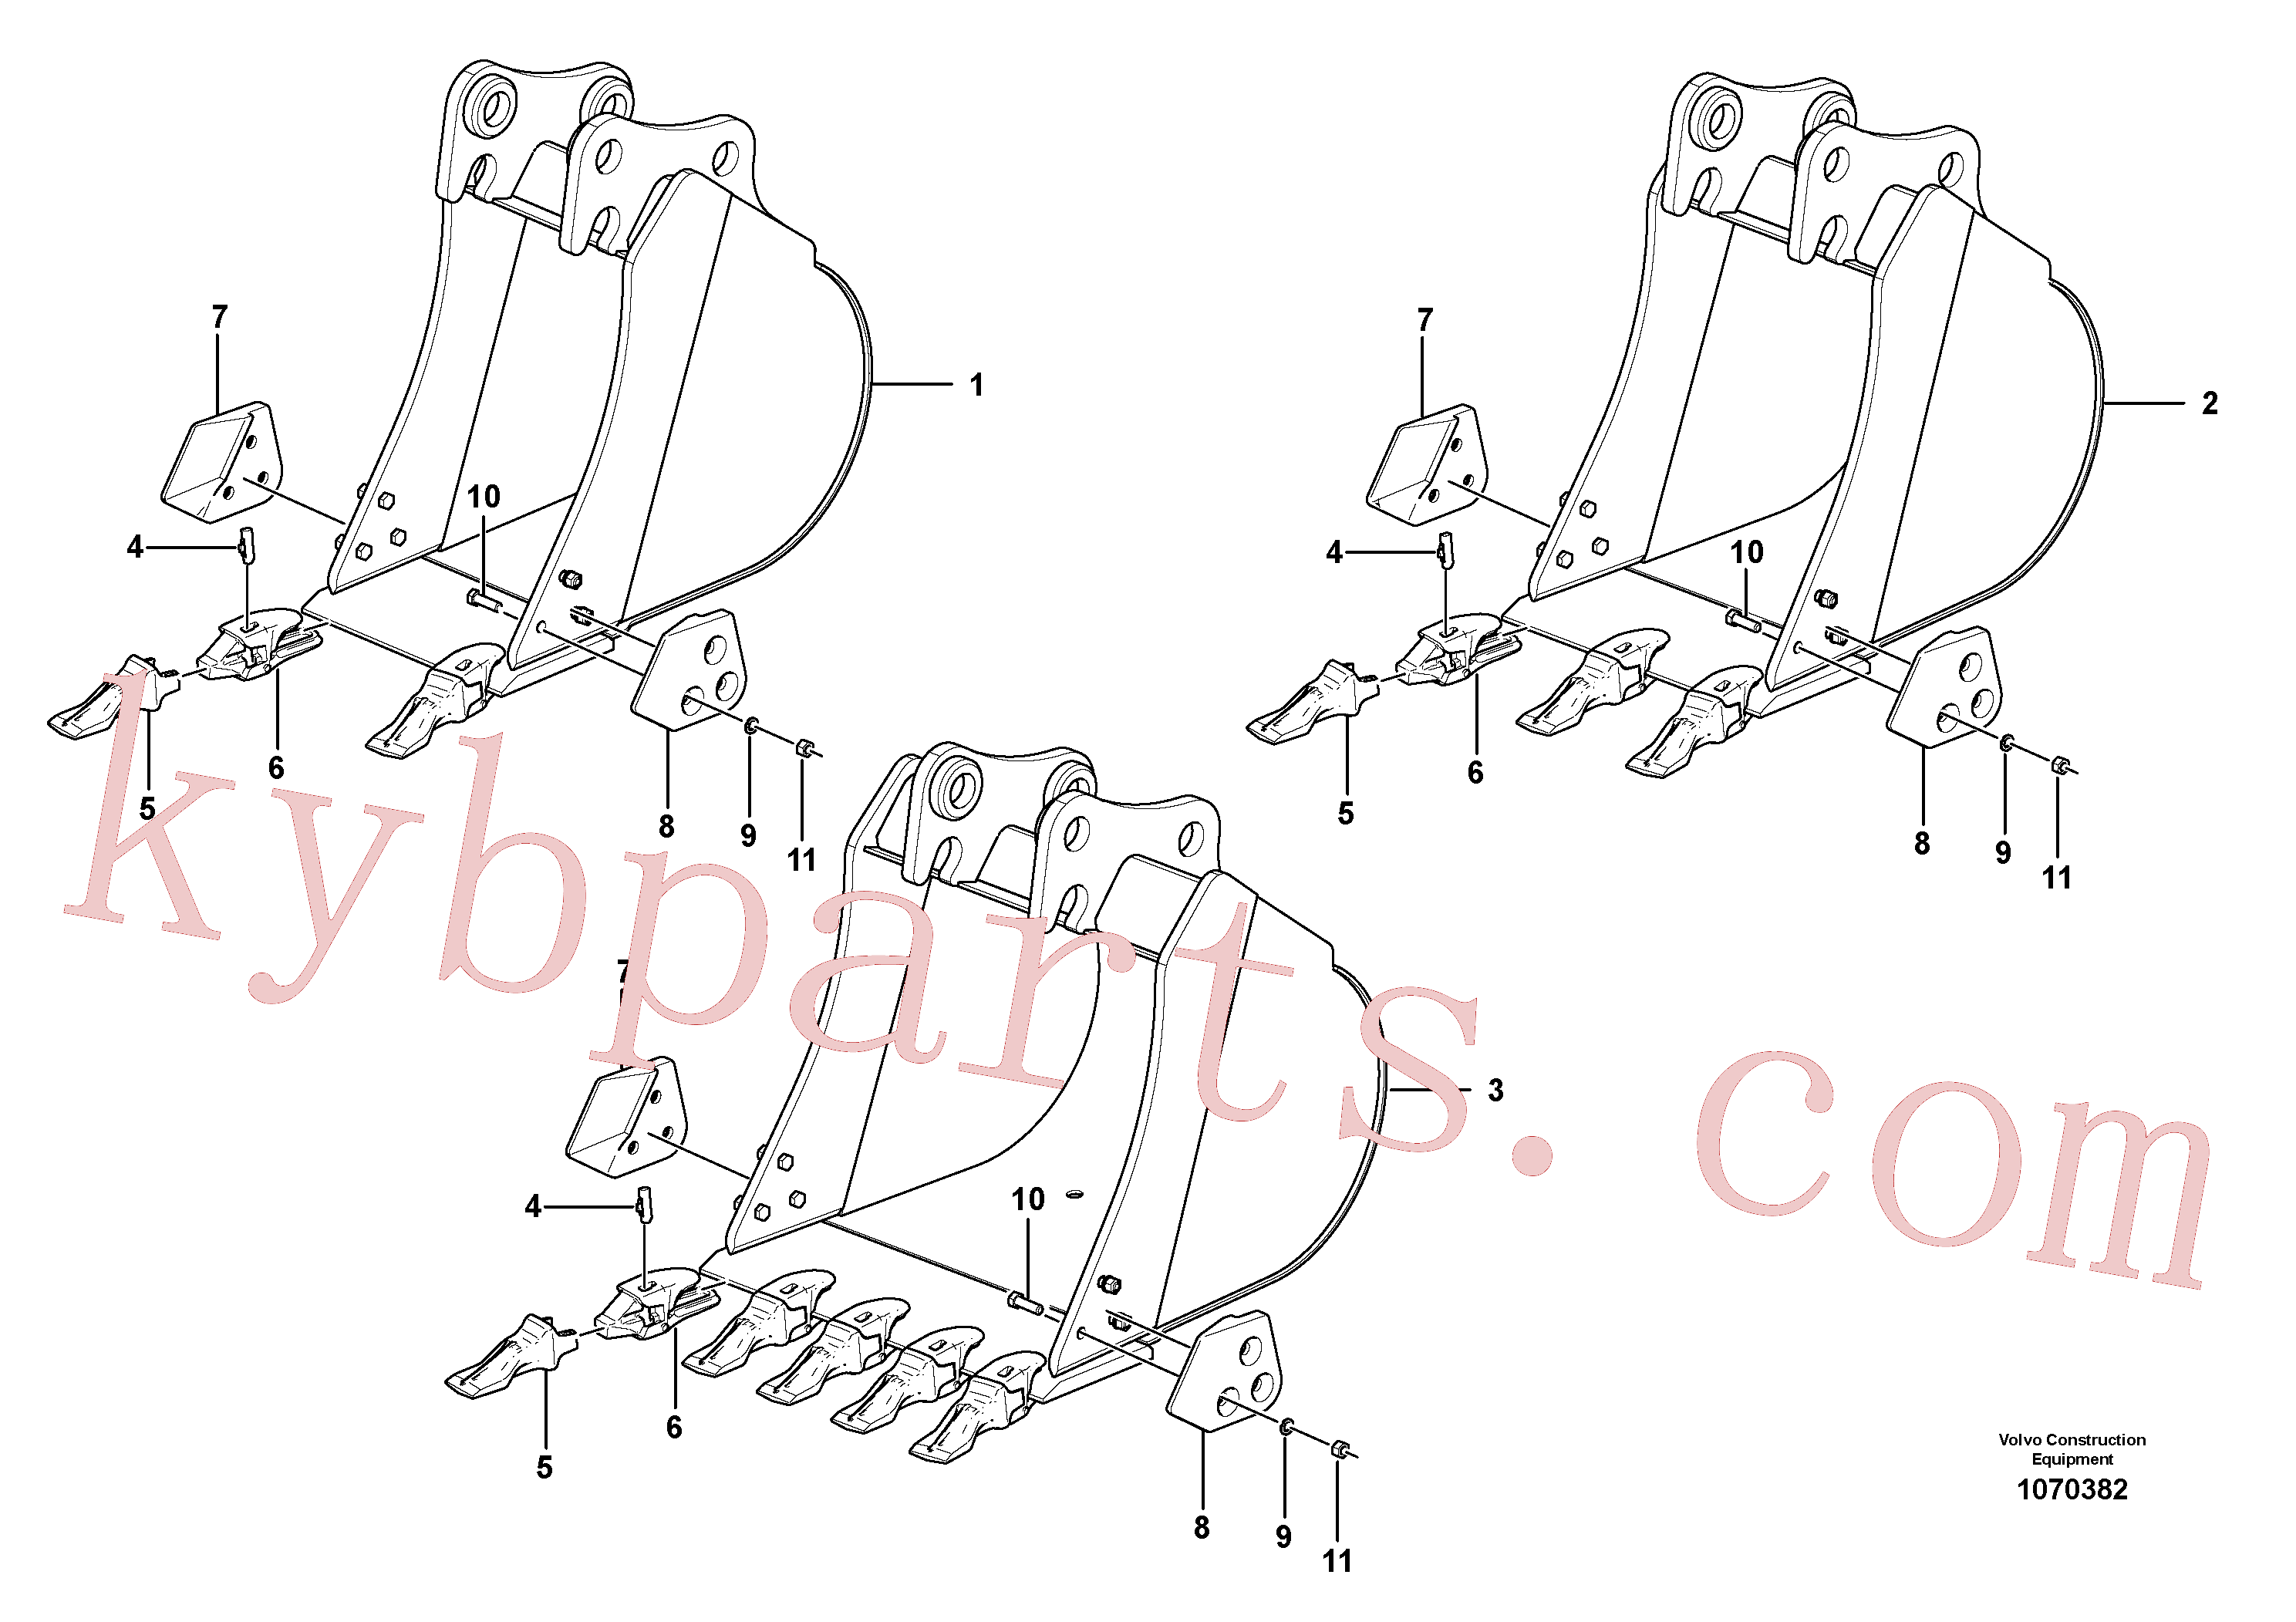 VOE15610862 for Volvo Bucket(1070382 assembly)